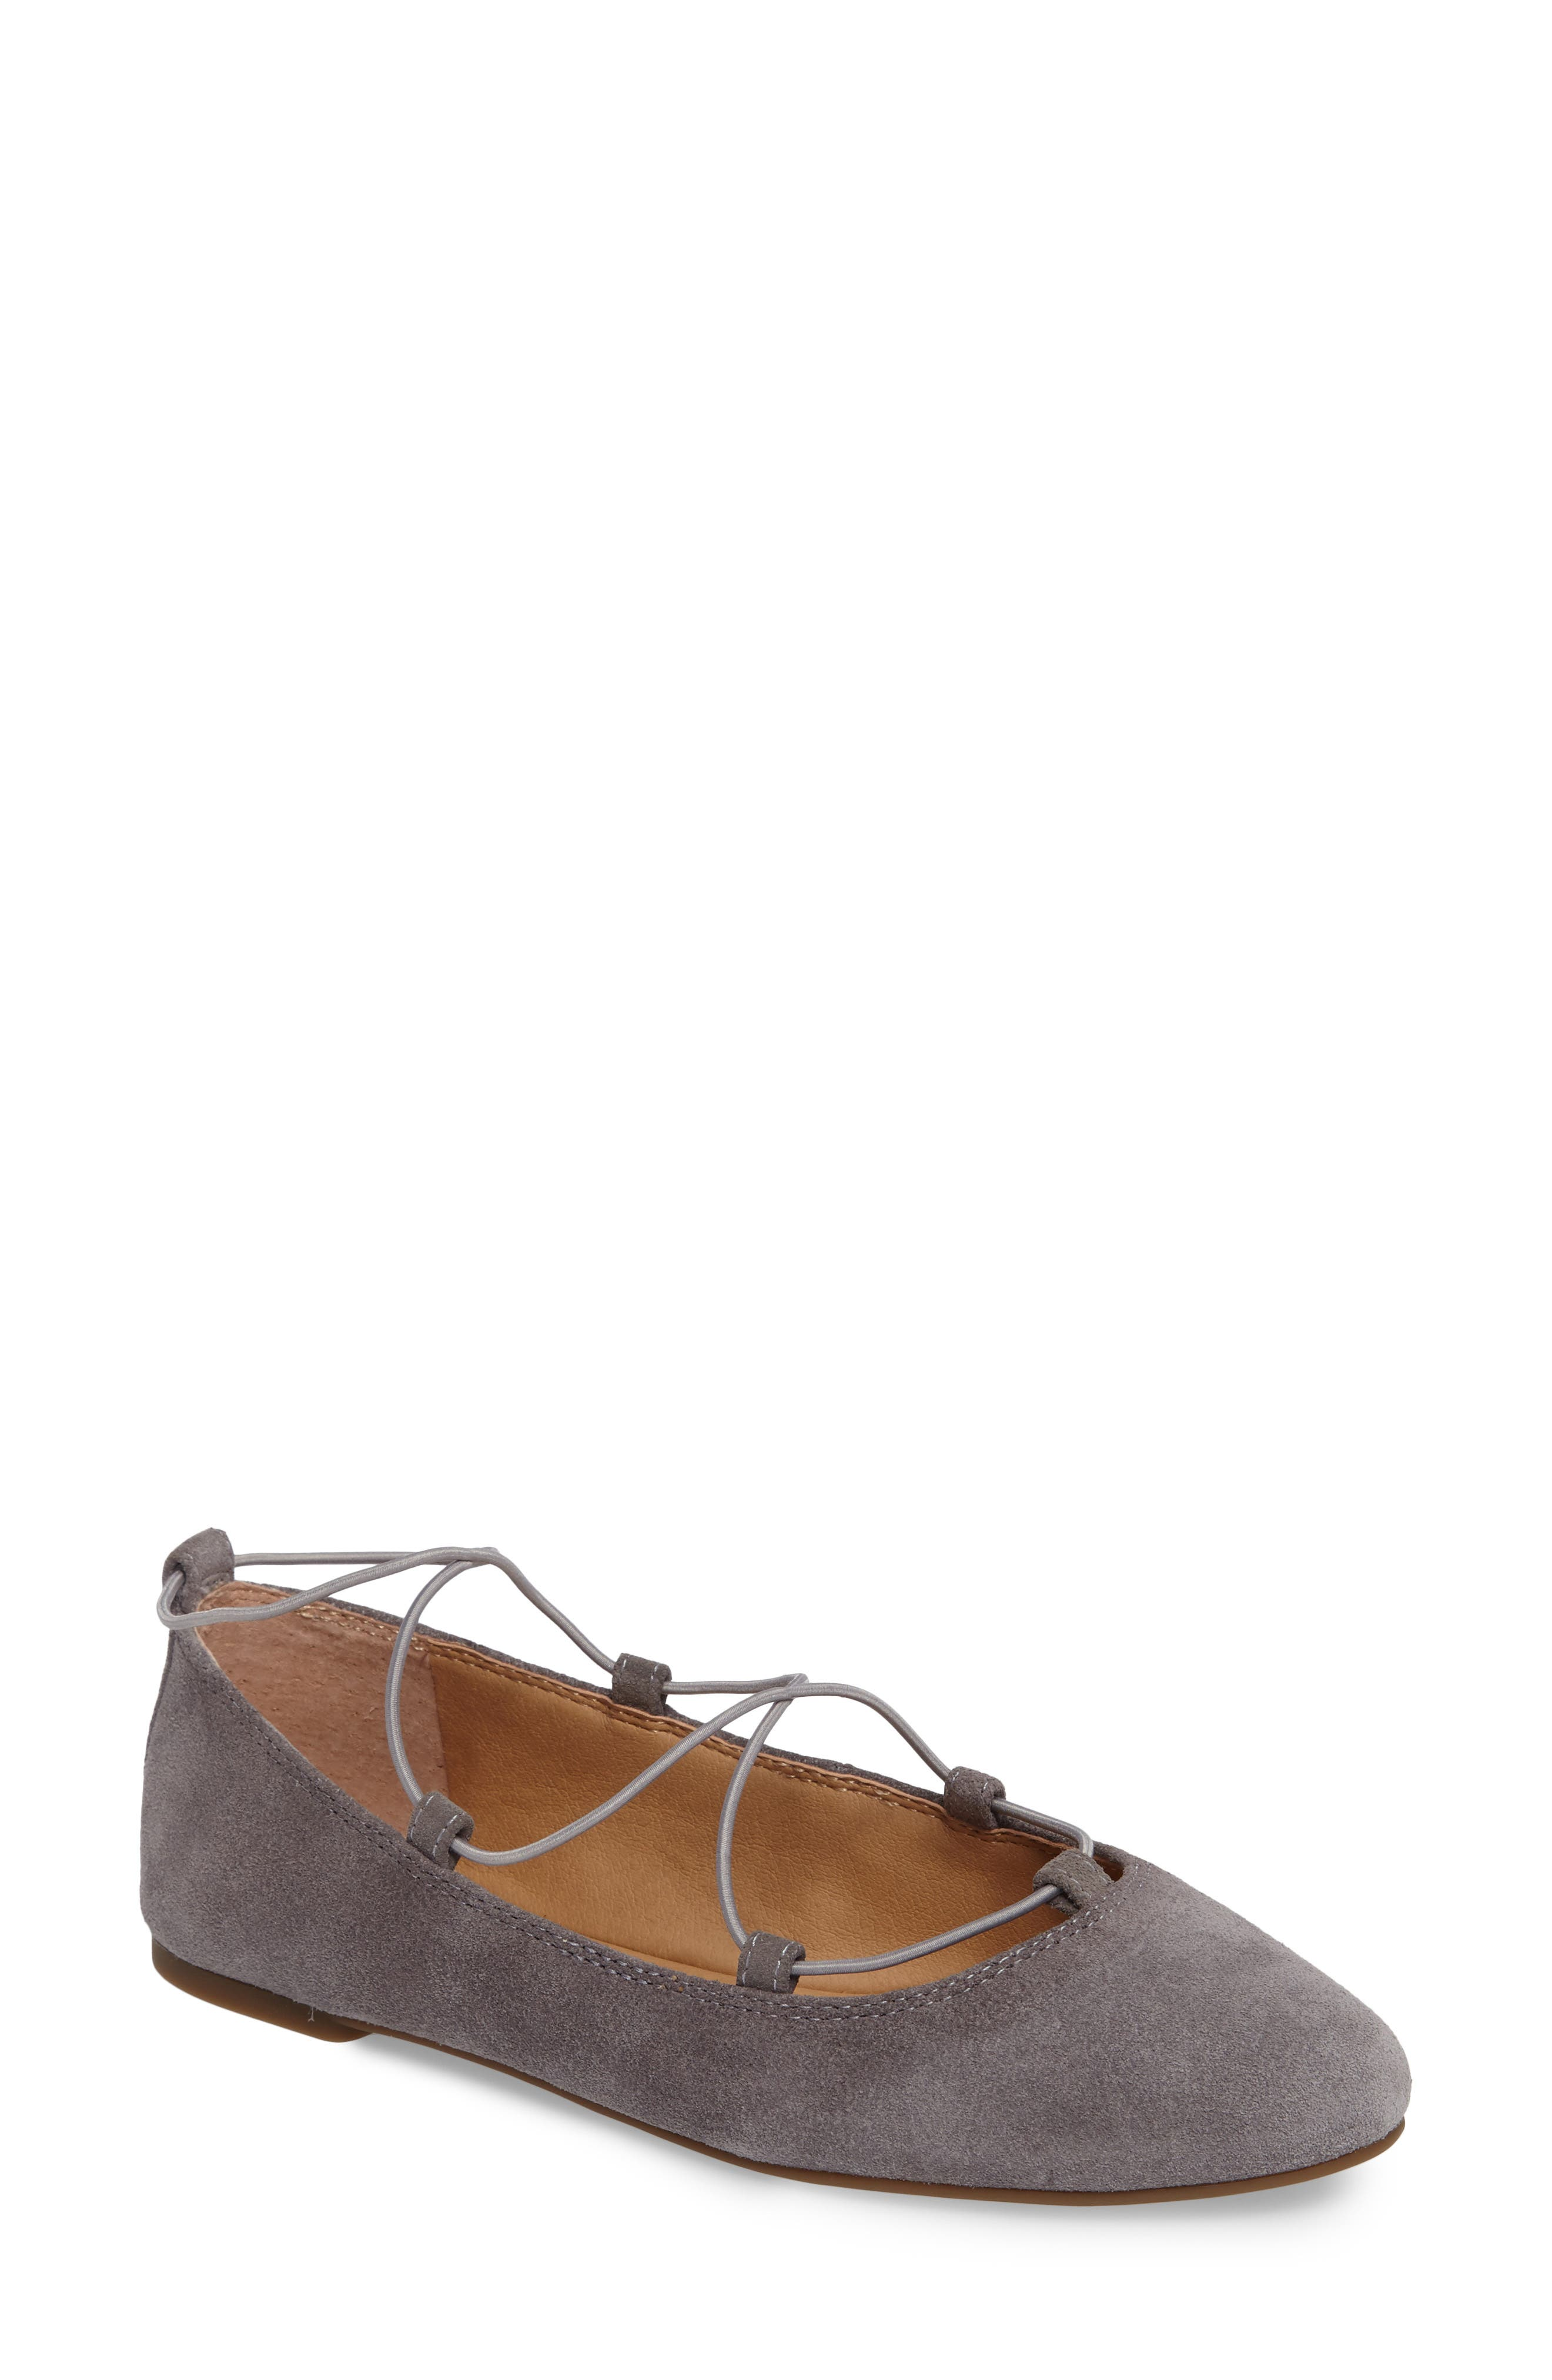 'Aviee' Lace-Up Flat,                             Main thumbnail 3, color,